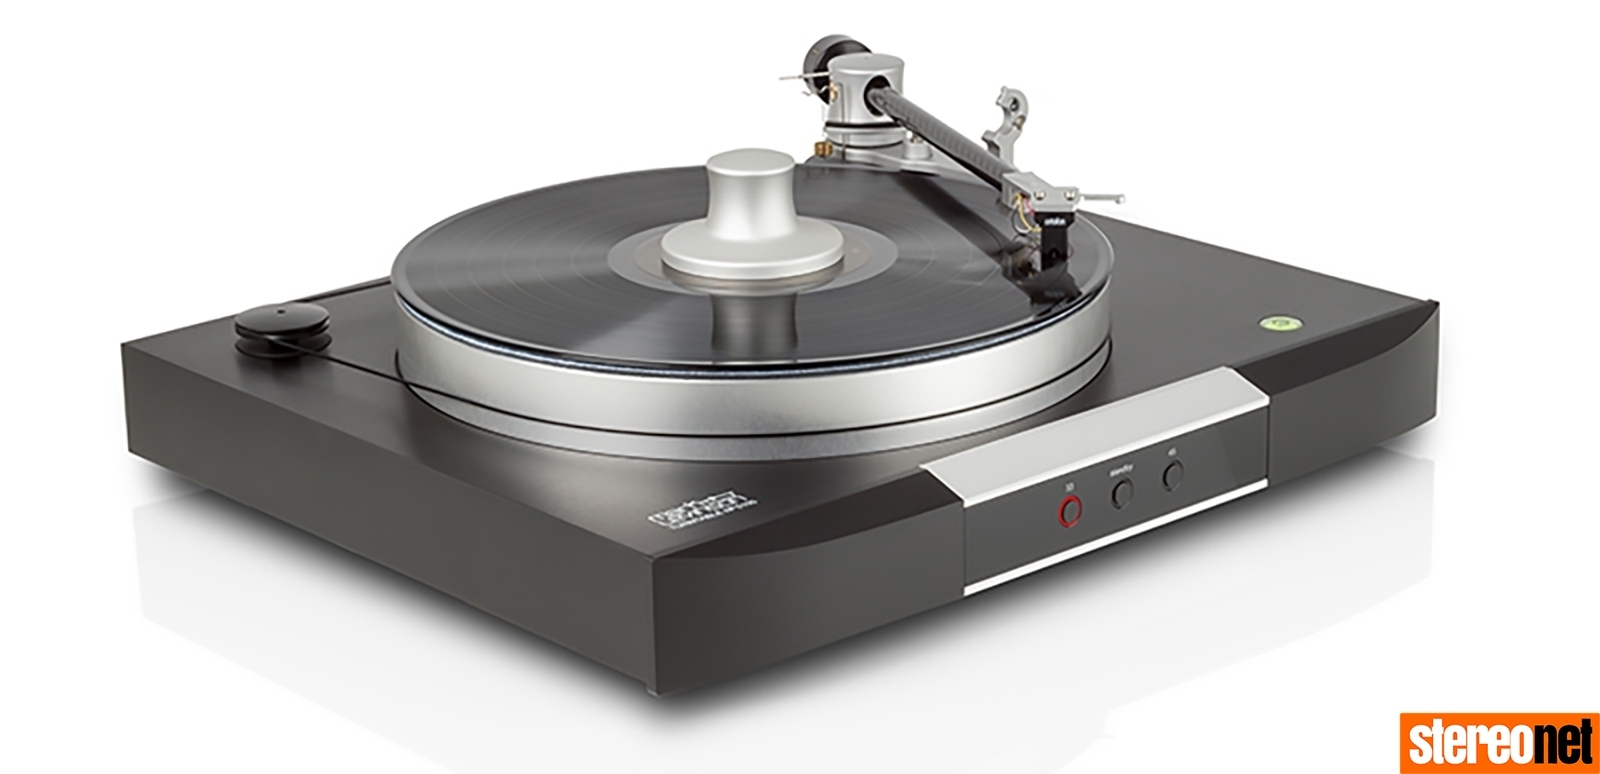 Mark Levinson 5105 turntable CES 2020